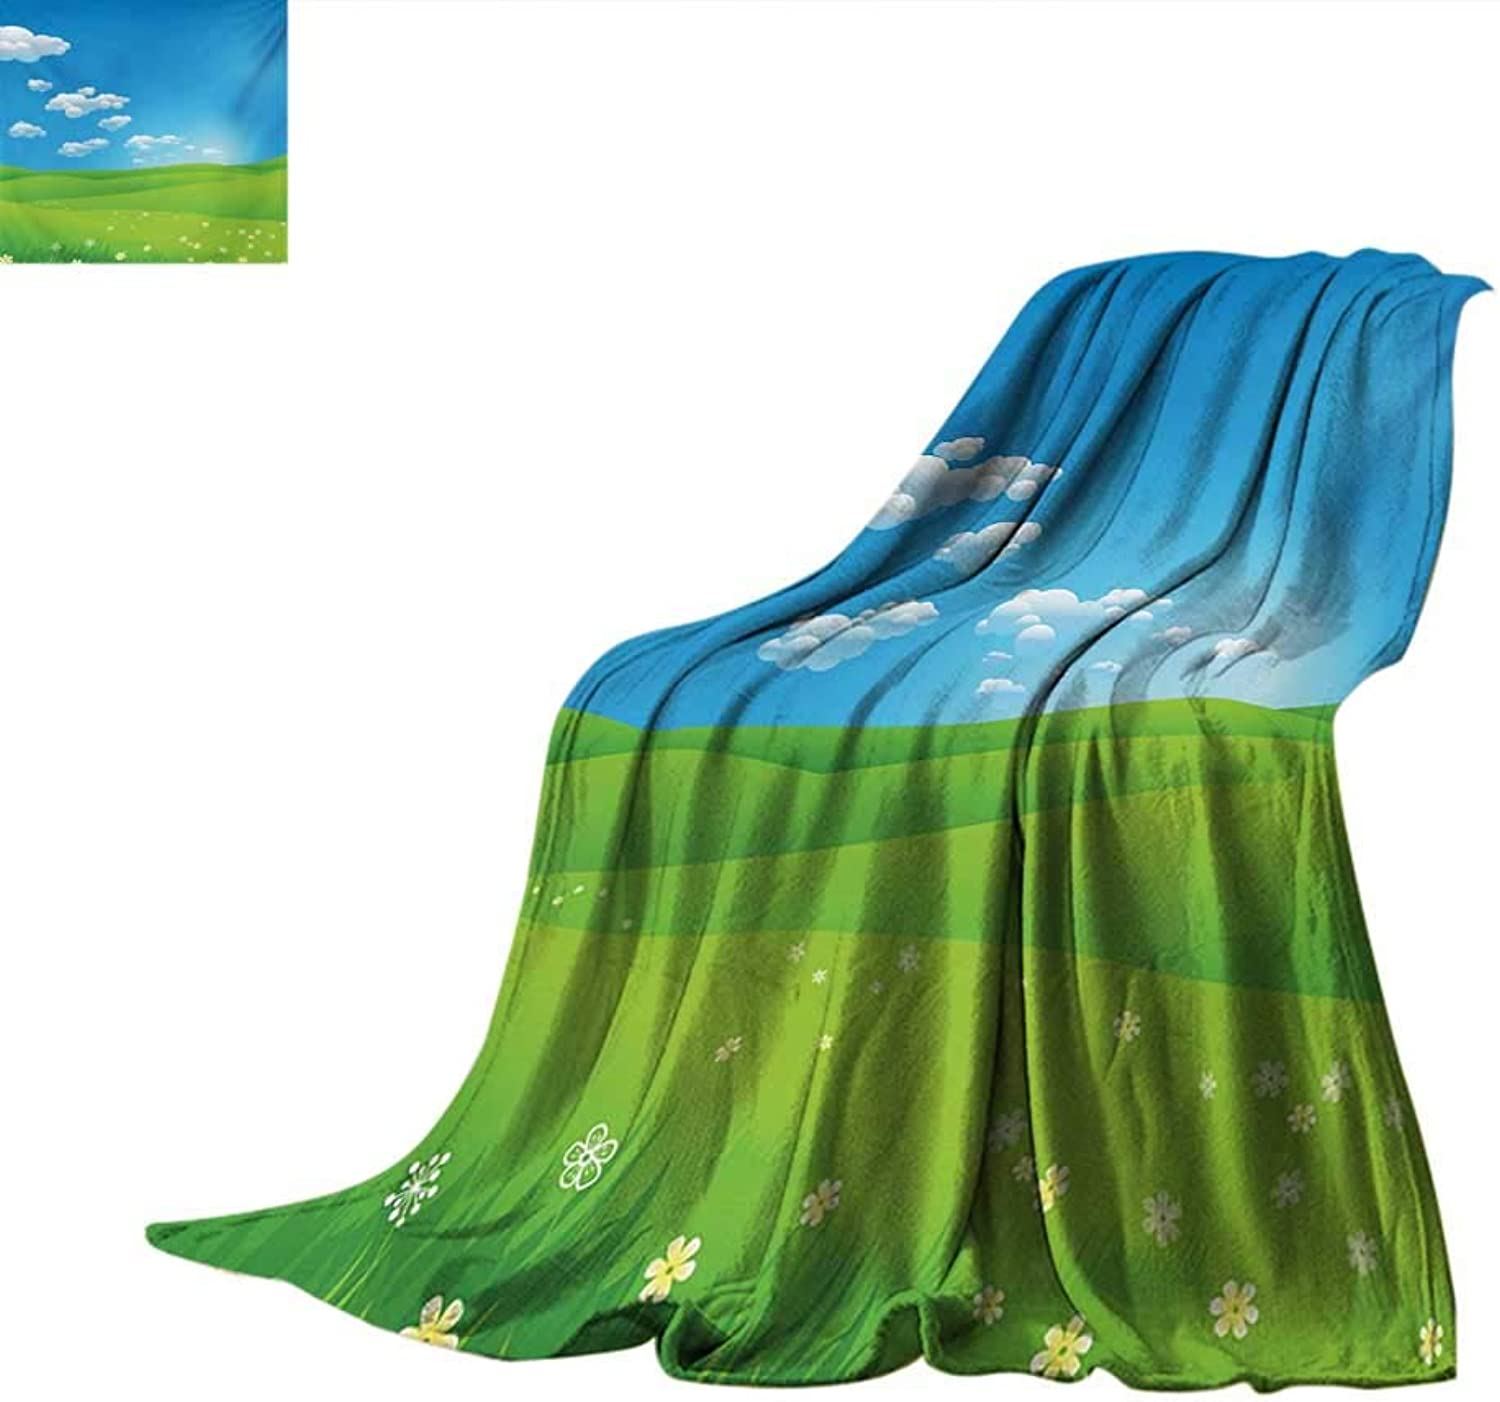 LandscapeFlannel Single Student blanketCartoon Scenery Clouds Valley Hills Grass Sunbeams Flowers Artprint ImageStudent Blanket 80 x60  bluee White Green